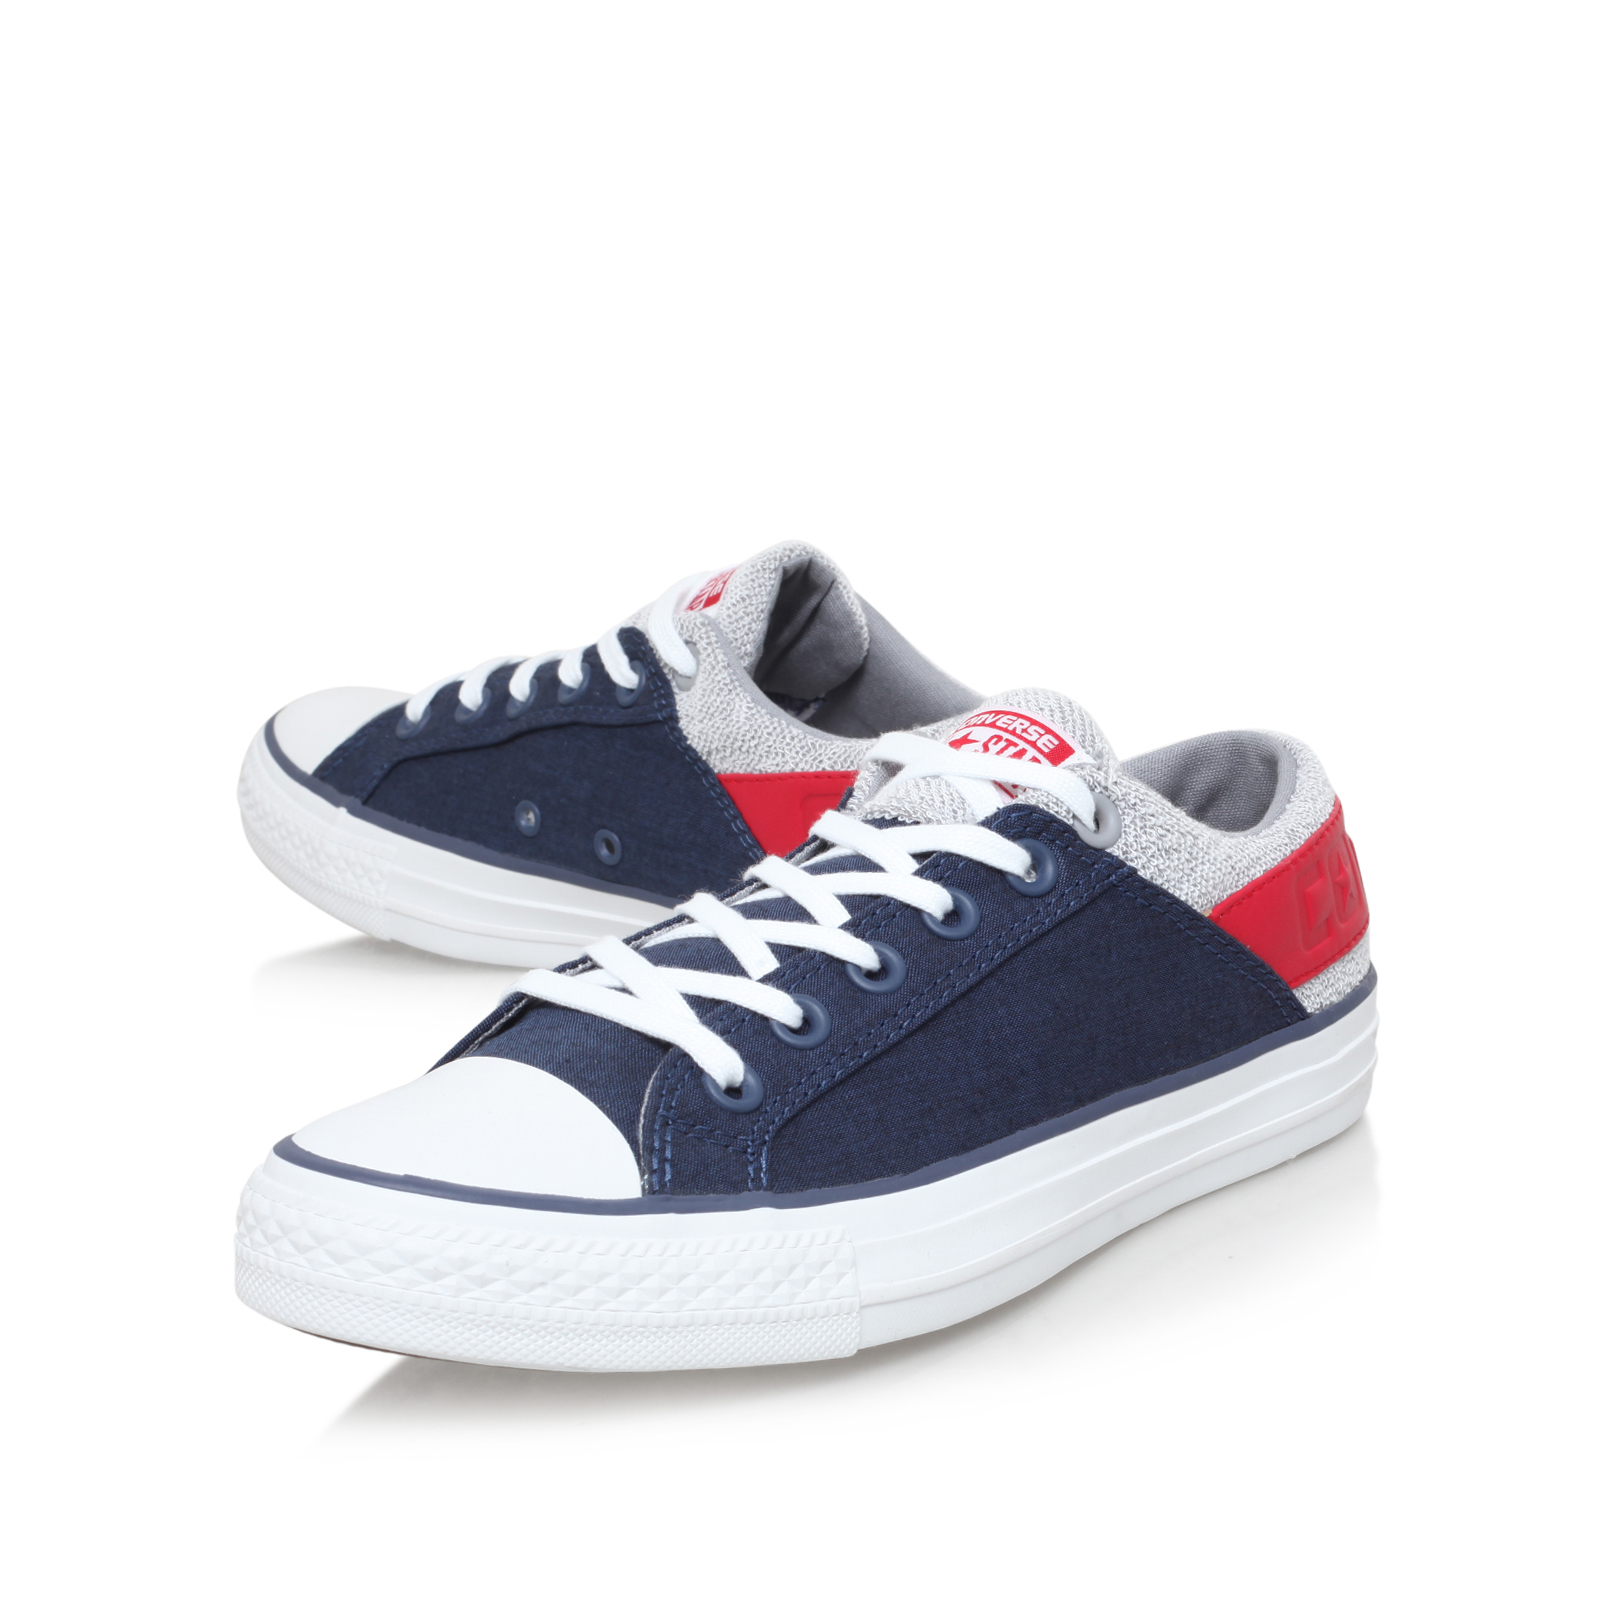 CONVERSE BAND Converse Band Denim Sneakers by CONVERSE